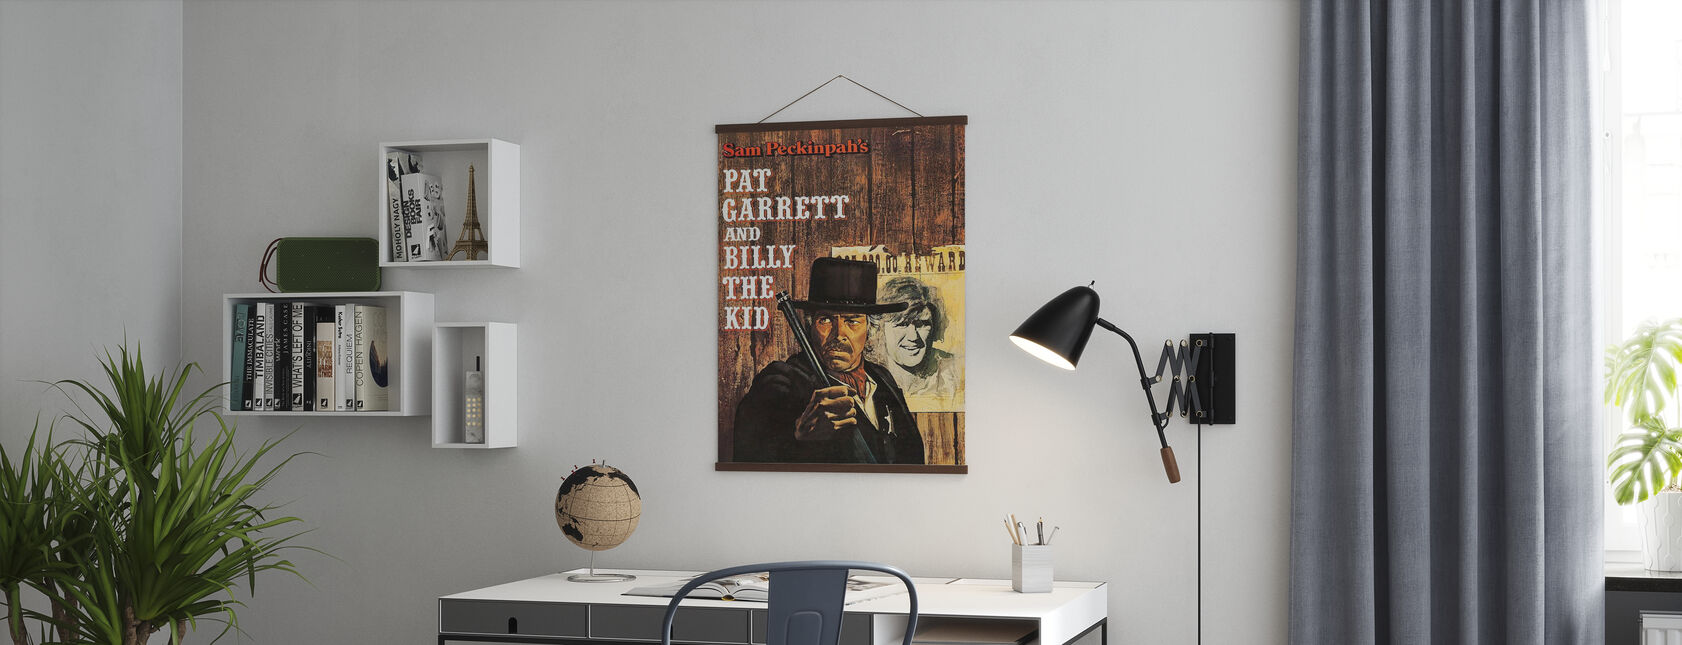 Pat Garrett i Billy Kid - Plakat - Biuro